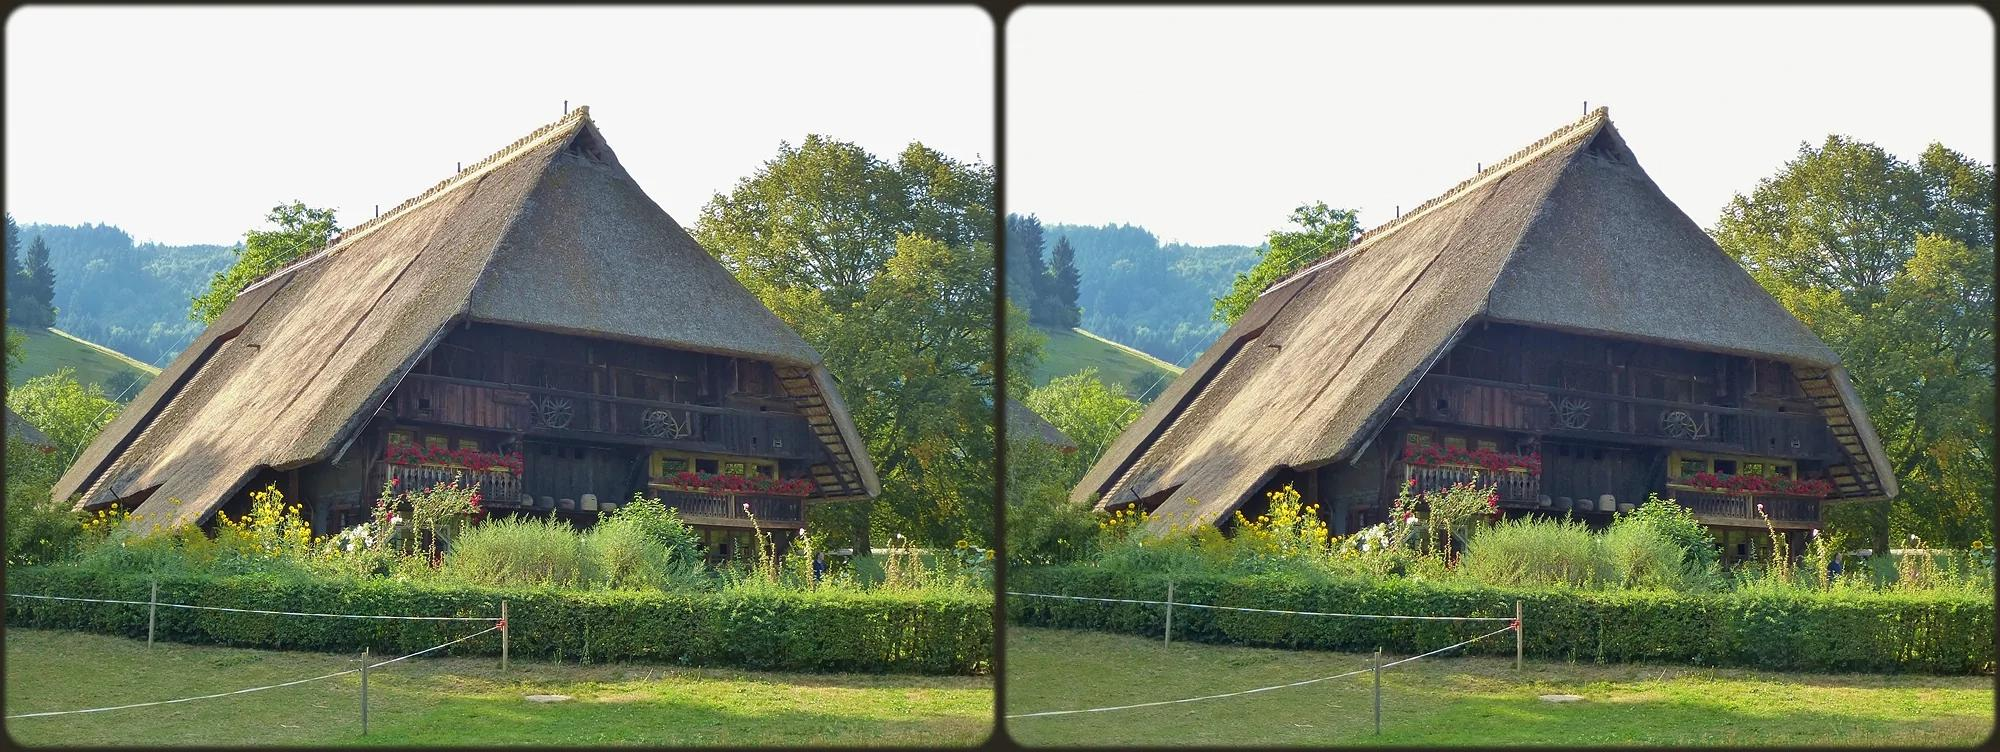 ... Black Forest House 3 - The Vogtsbauernhof farmhouse ...